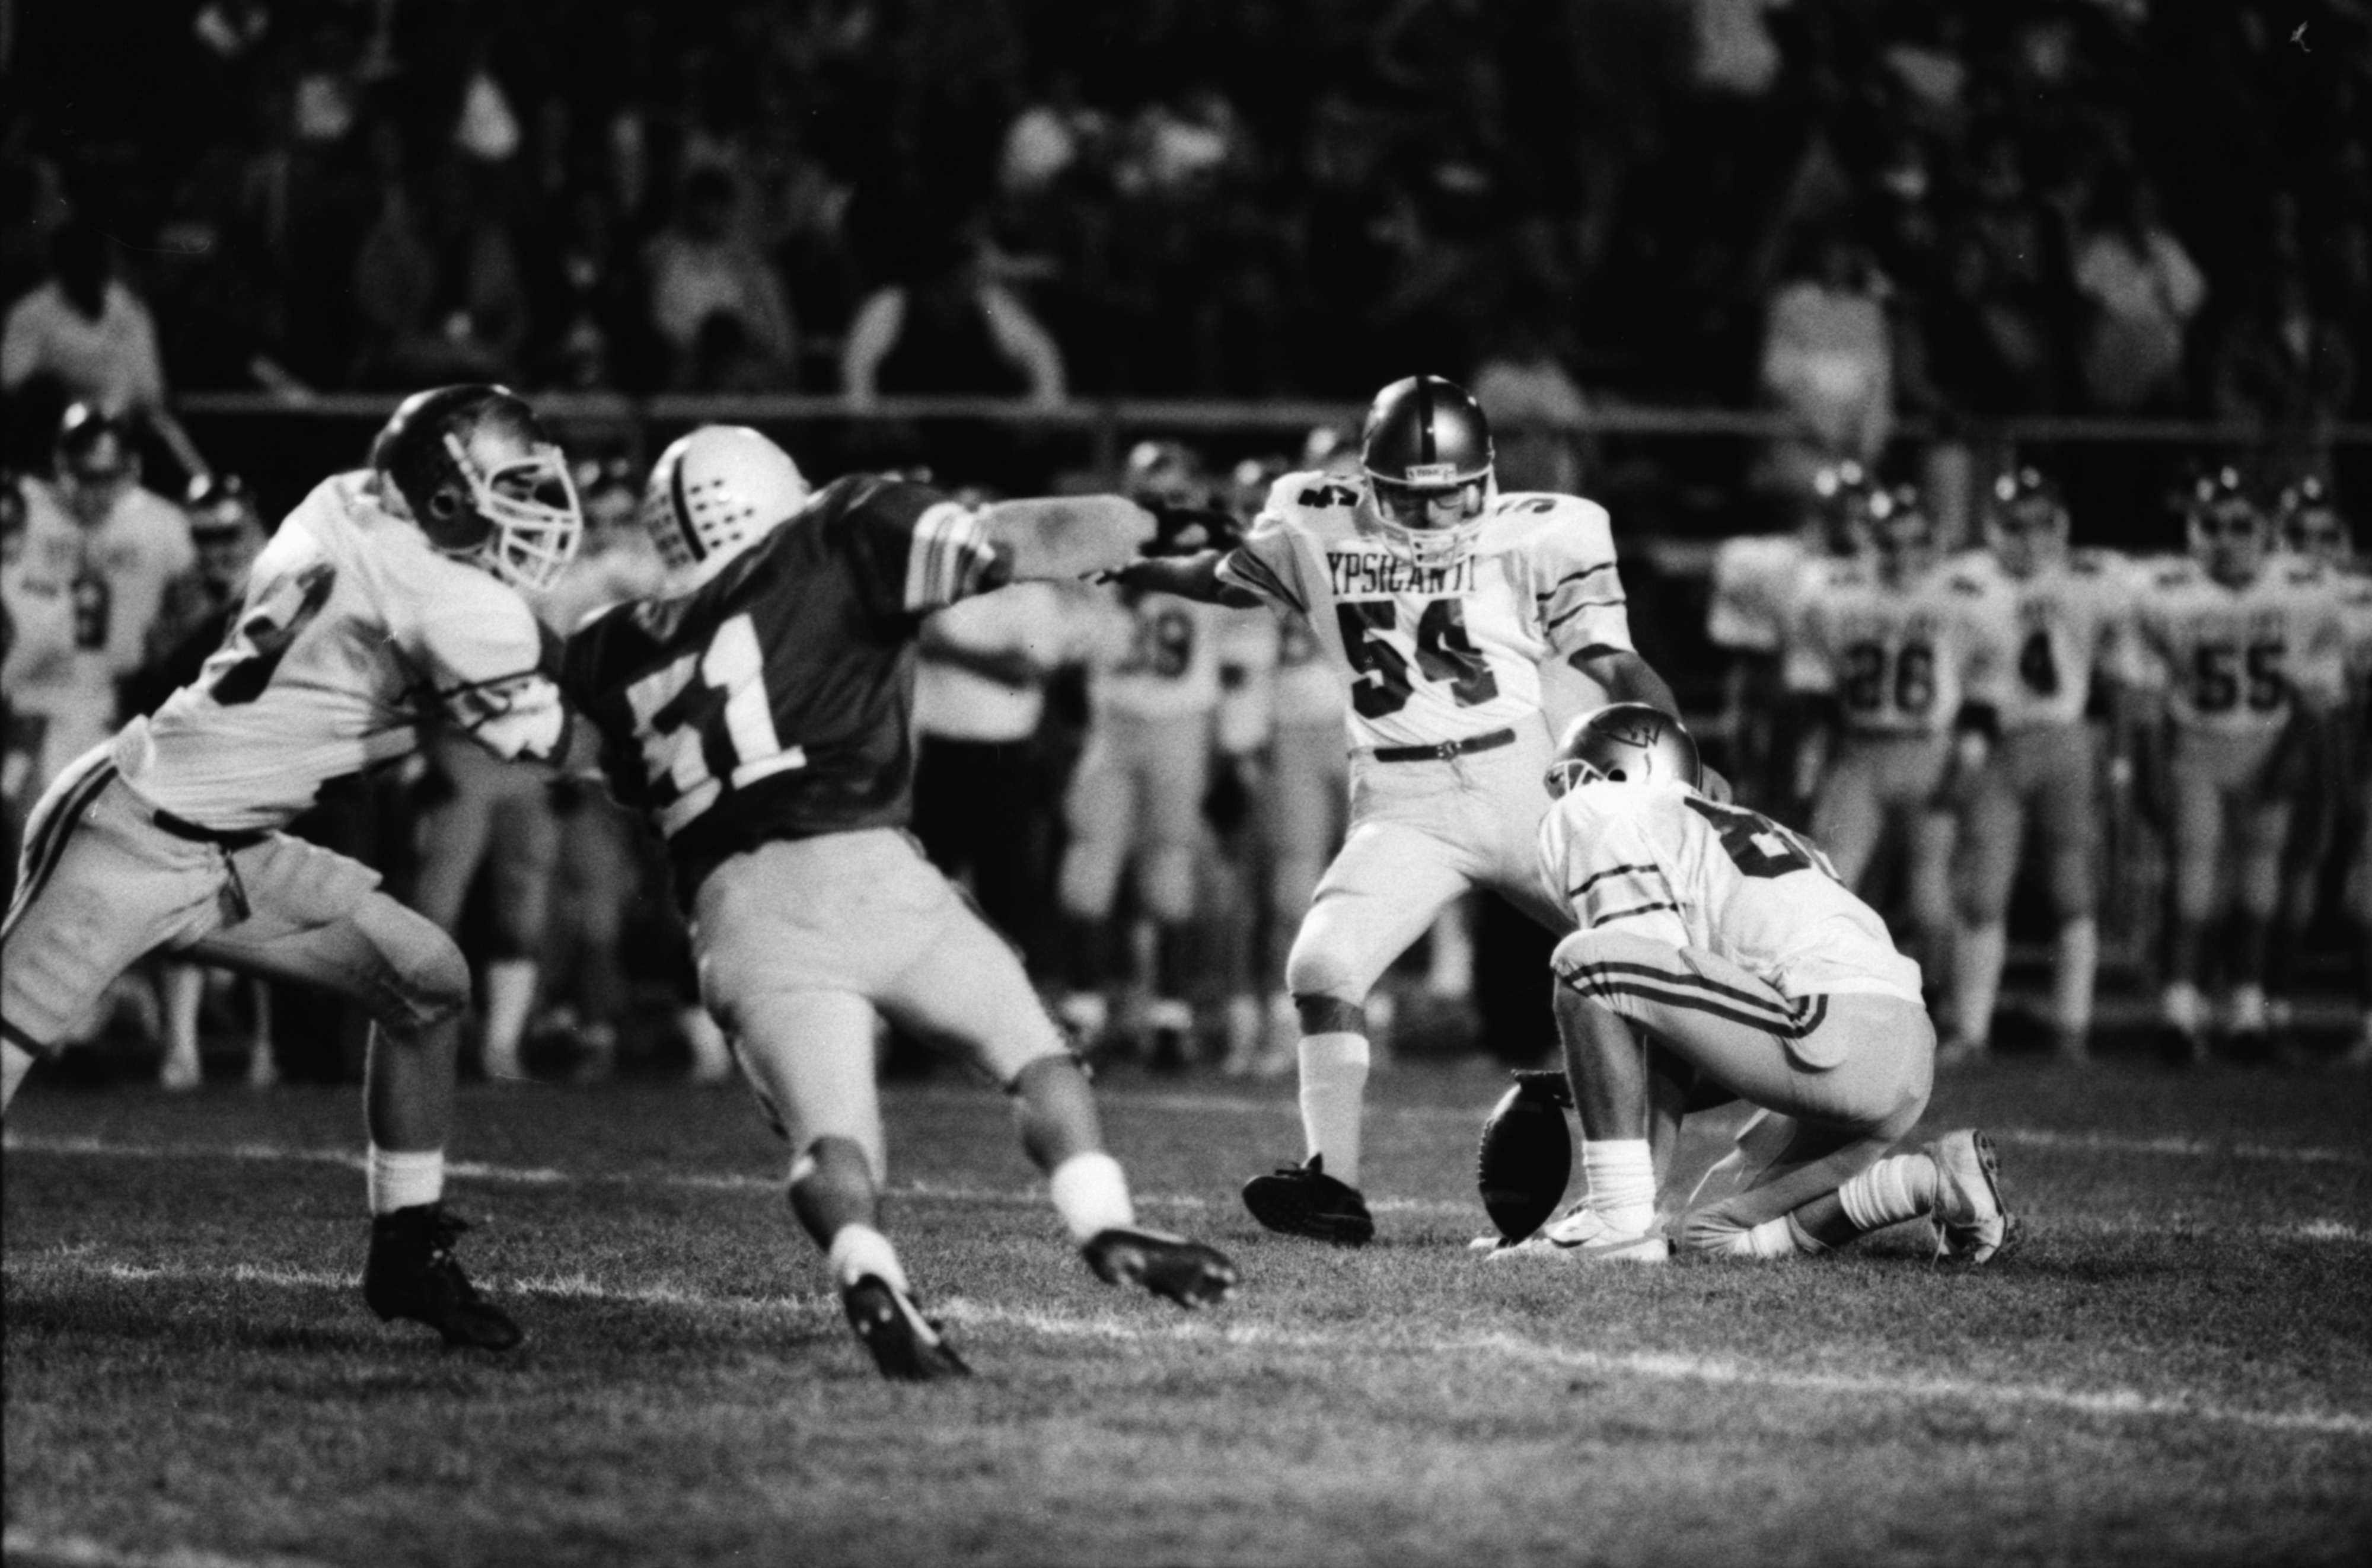 Ypsilanti Attempts a Field Goal in 7-17 Loss to Pioneer, October 1987 image